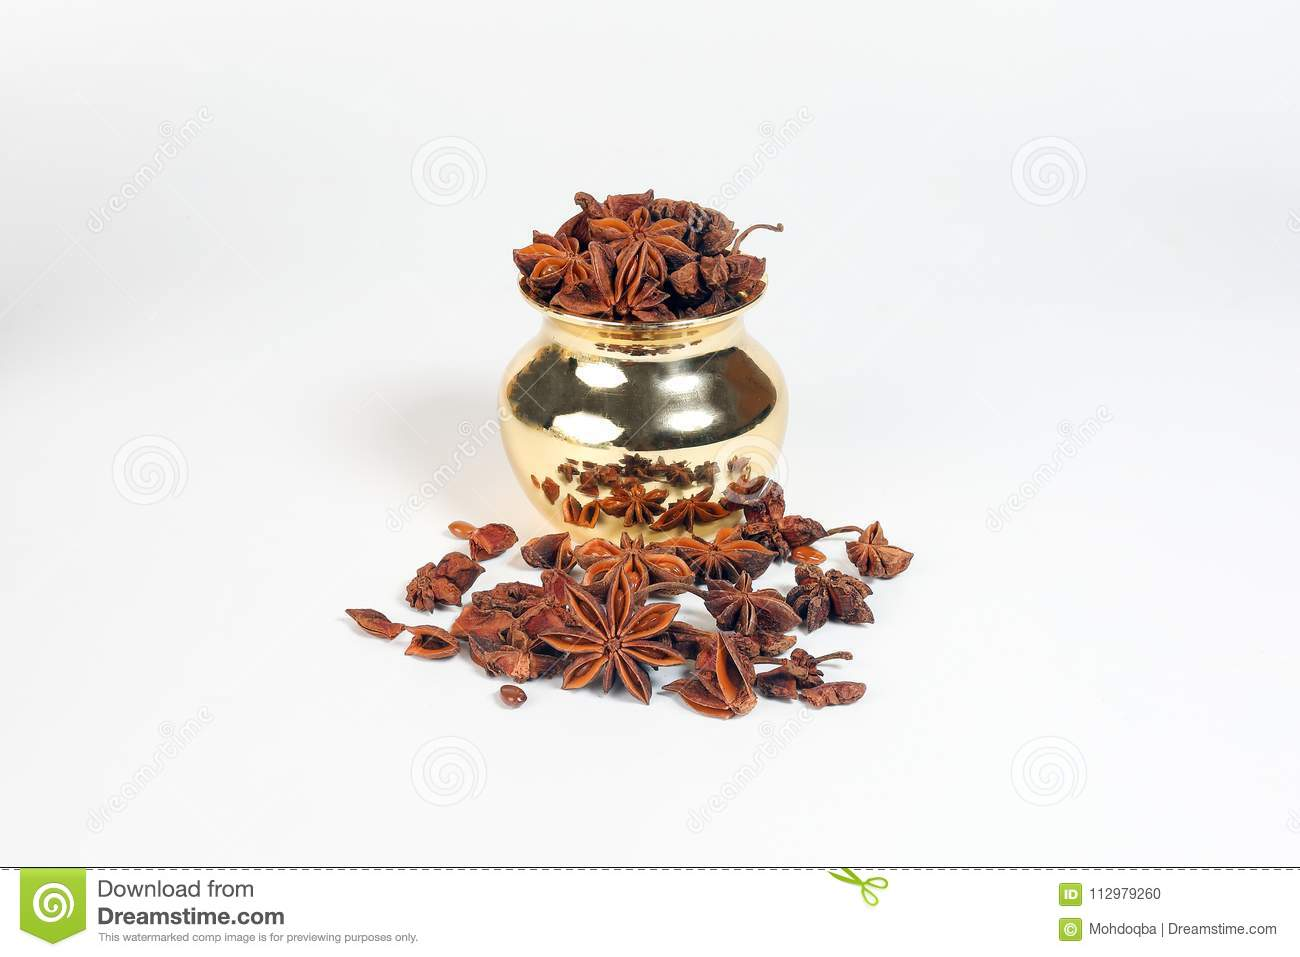 Star anise spice in shiny metal pot